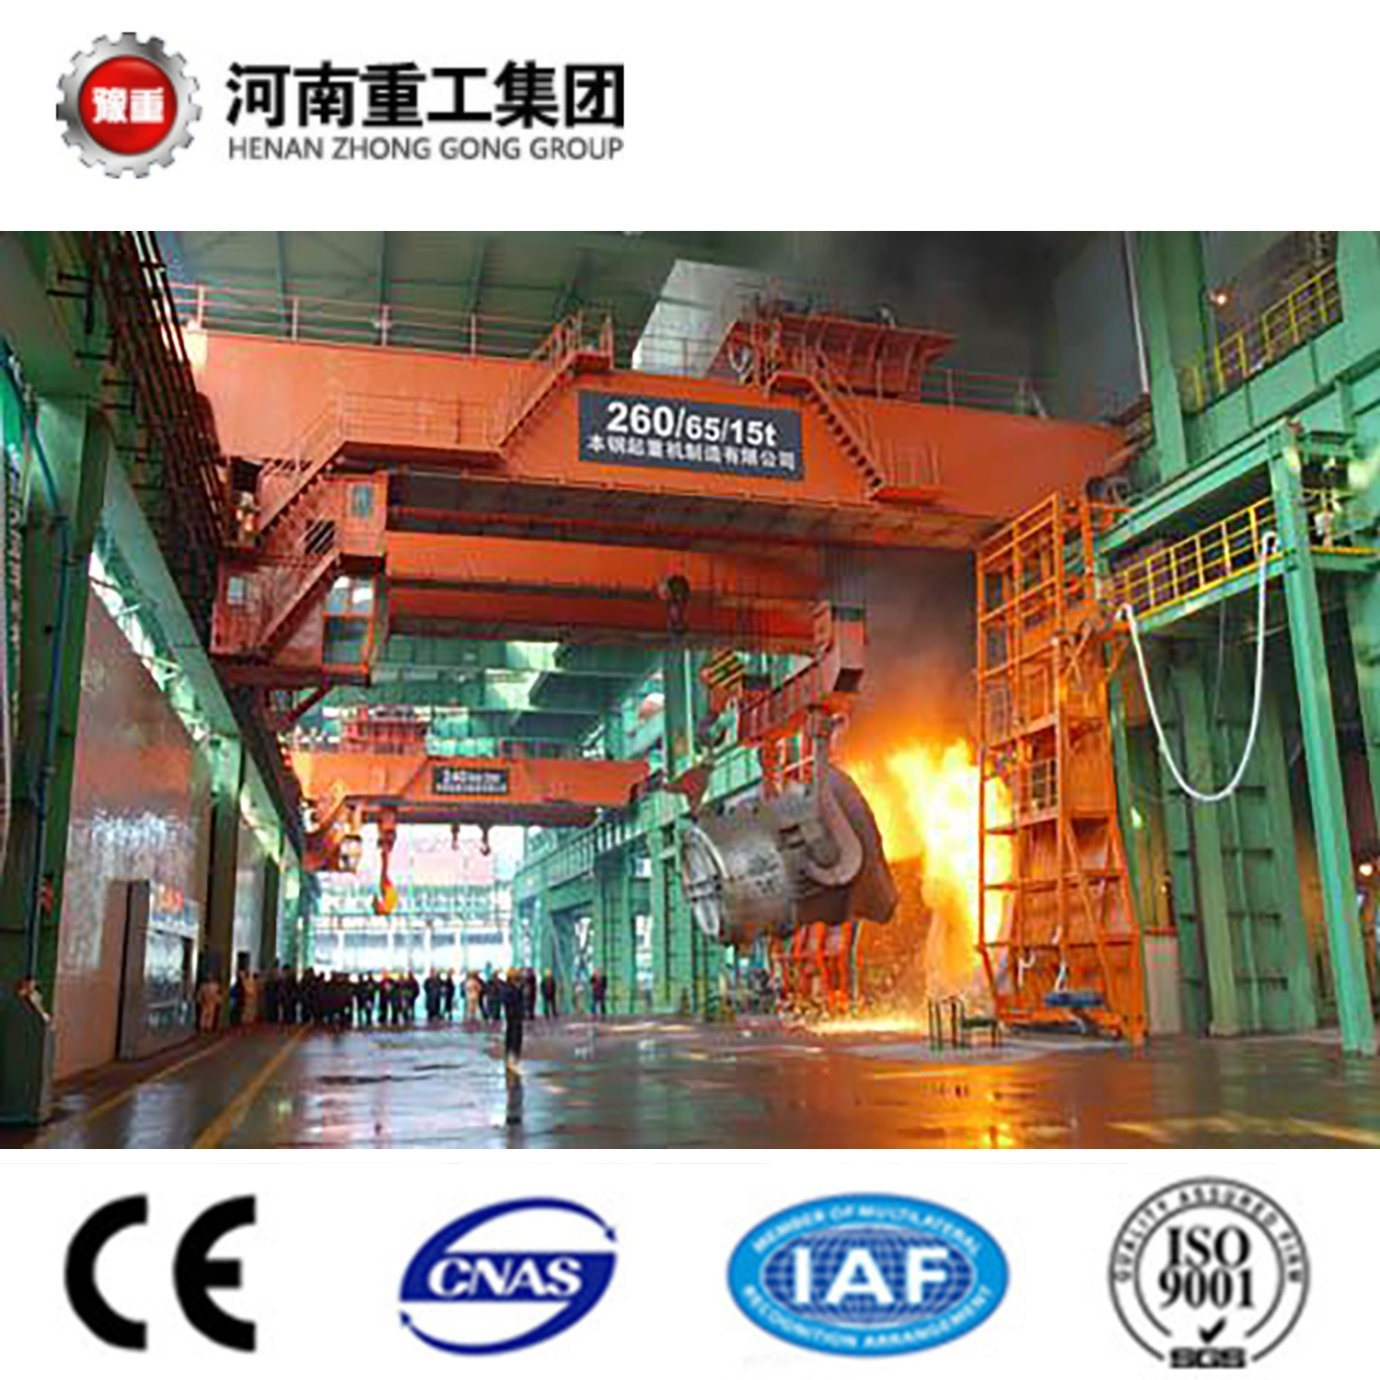 China Top Quality Foundry Metallurgy Casting Eot Bridge Overhead Workstation Cranes Work Station Crane Ase Systems